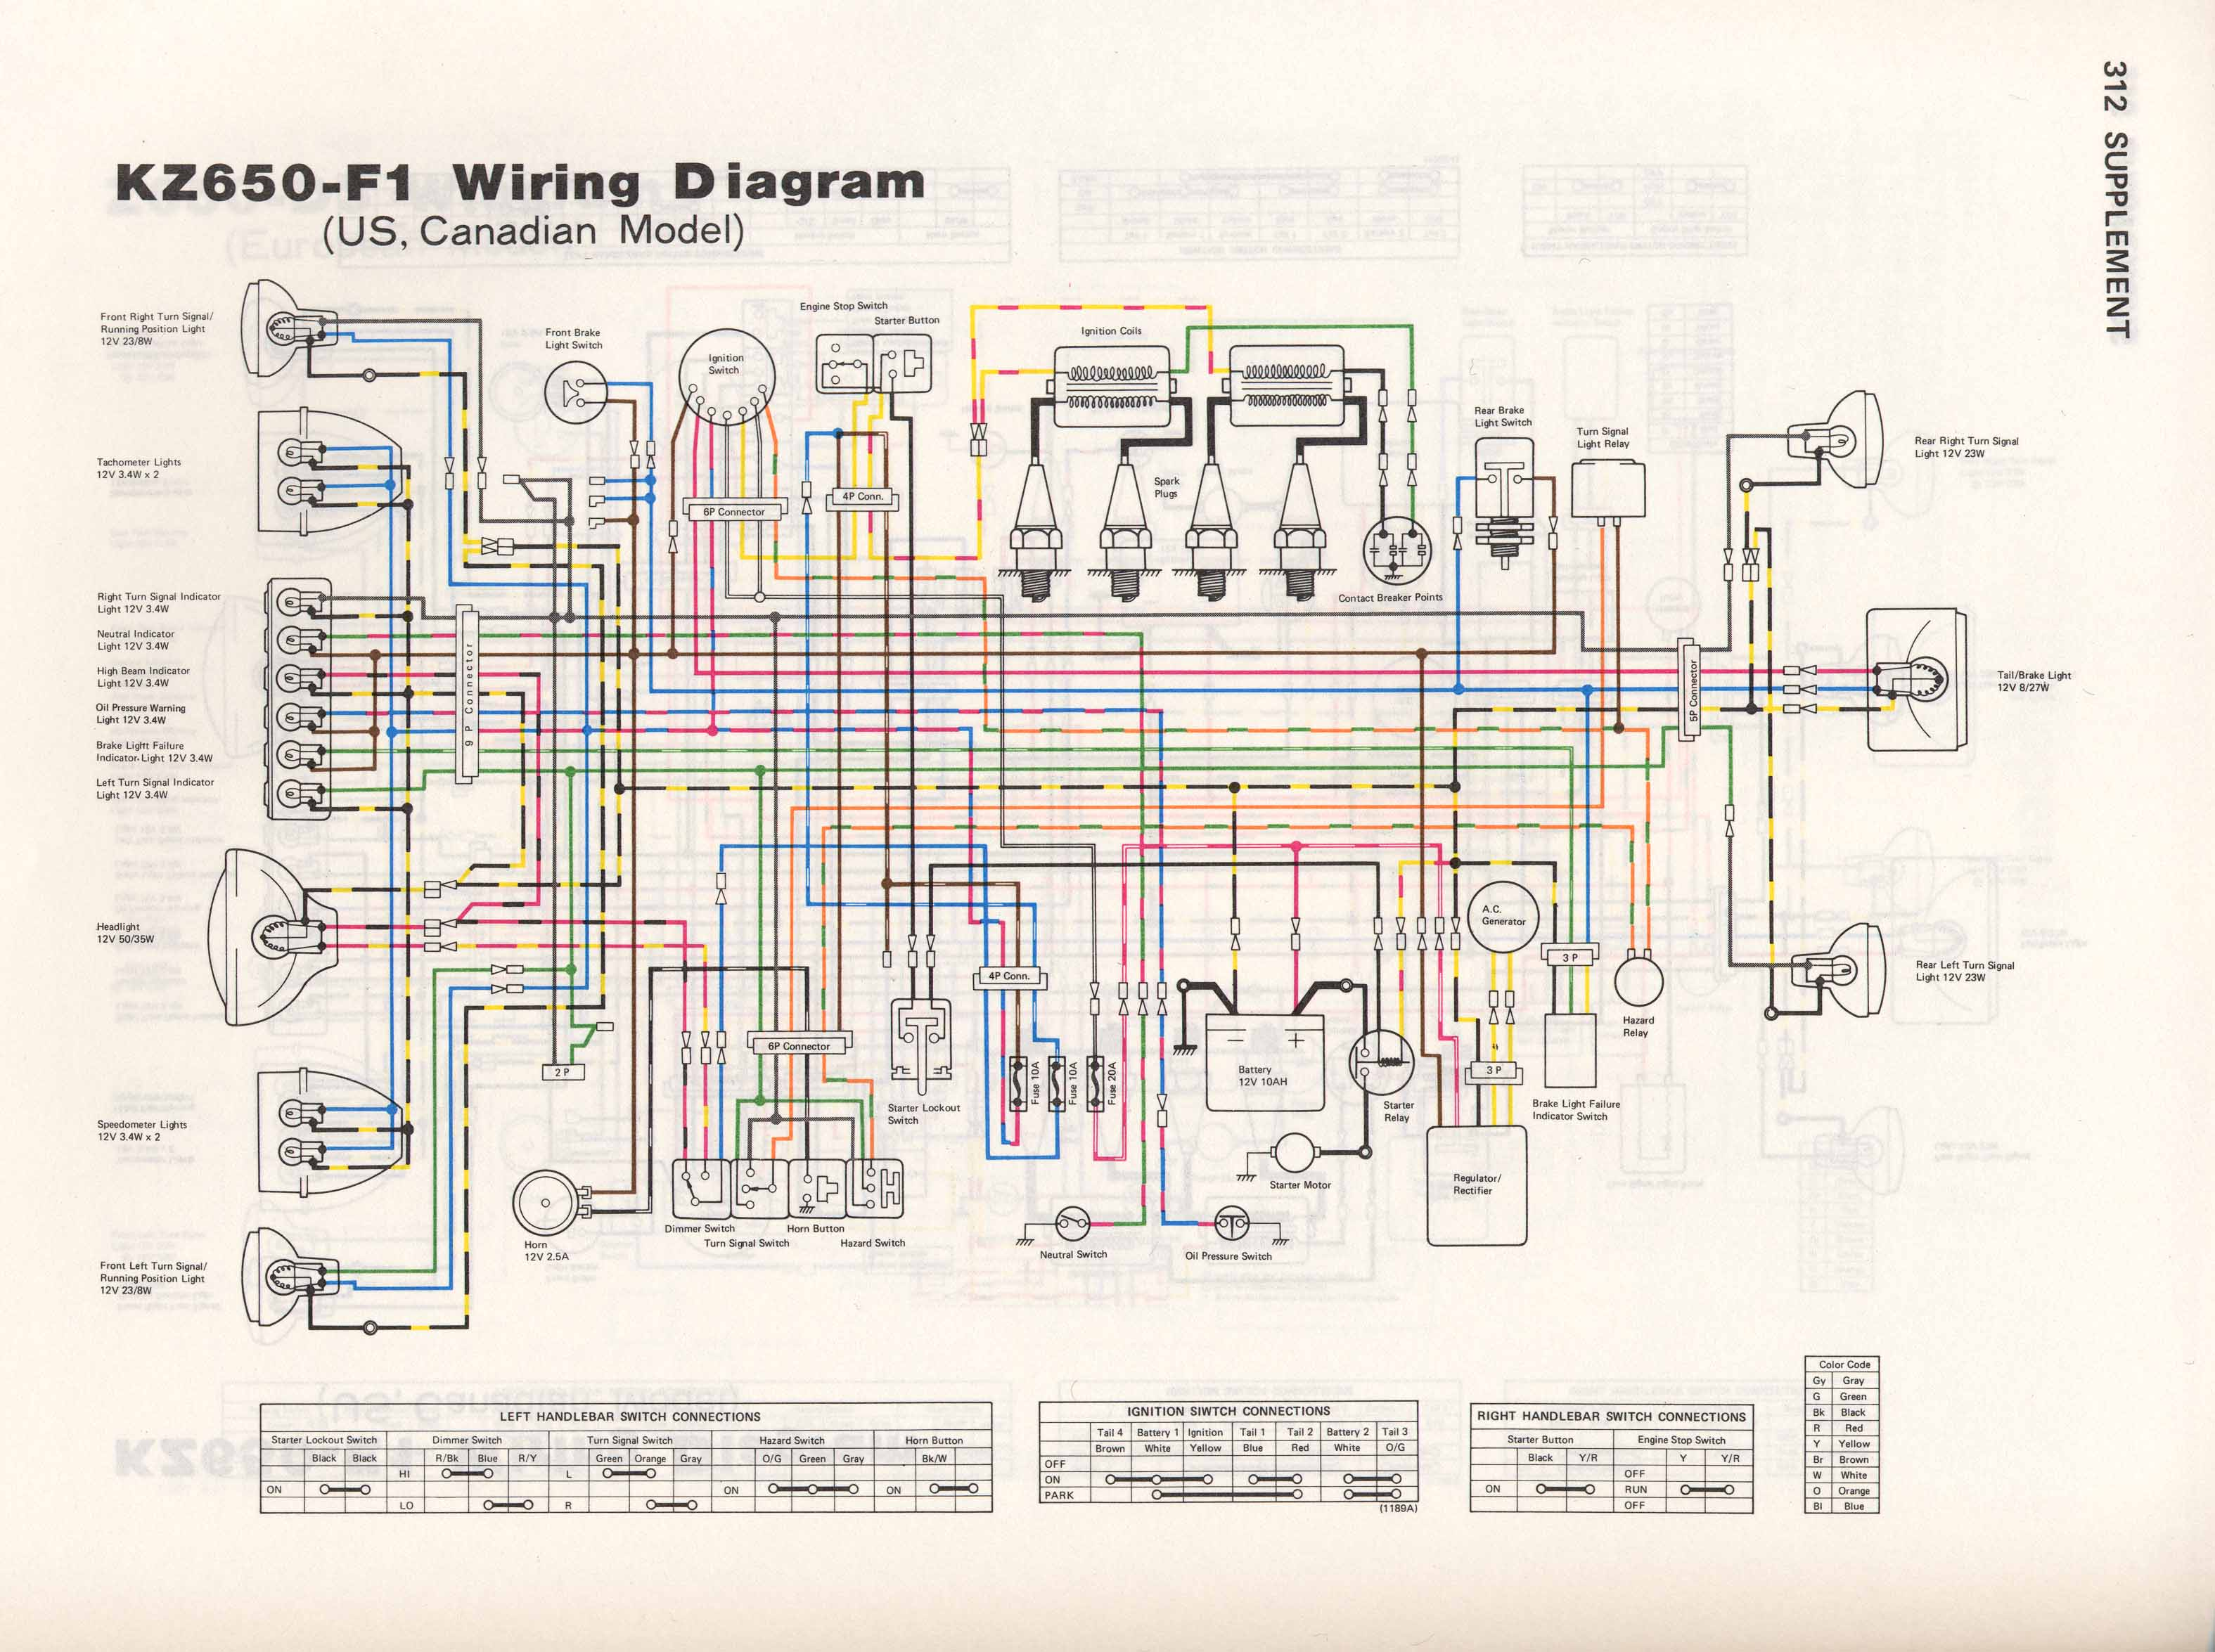 Kawasaki Z650 Wiring Diagram - Schematics Online on